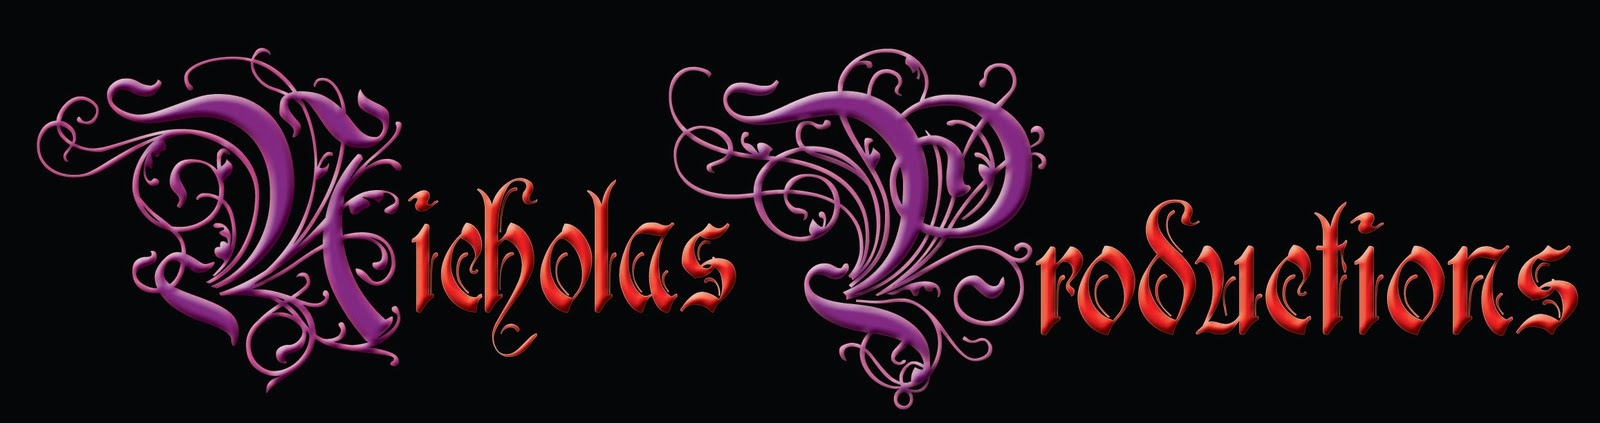 Nicholas Productions - Create Magic!